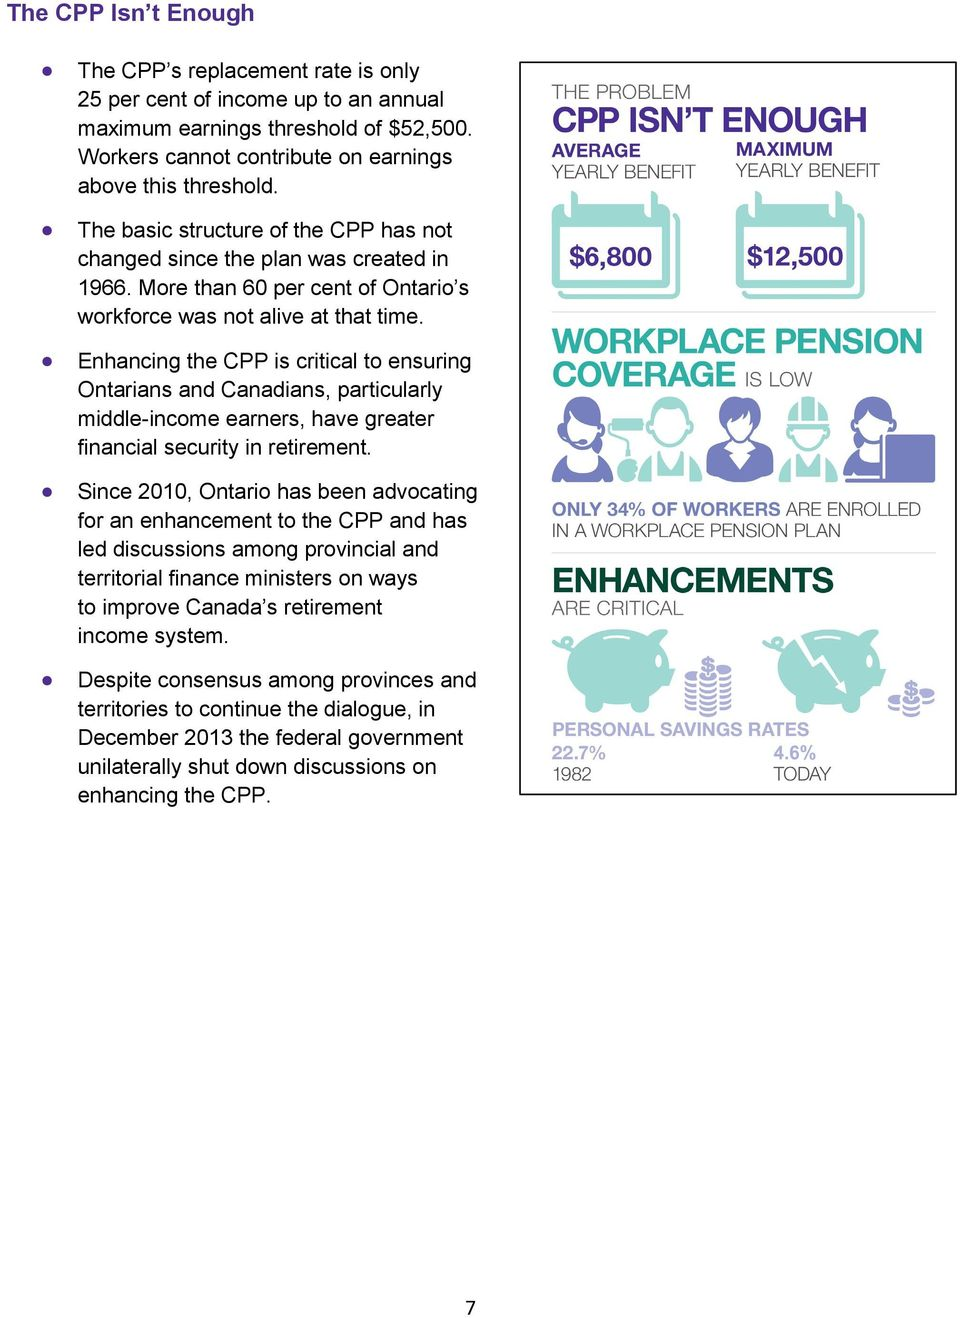 Enhancing the CPP is critical to ensuring Ontarians and Canadians, particularly middle-income earners, have greater financial security in retirement.